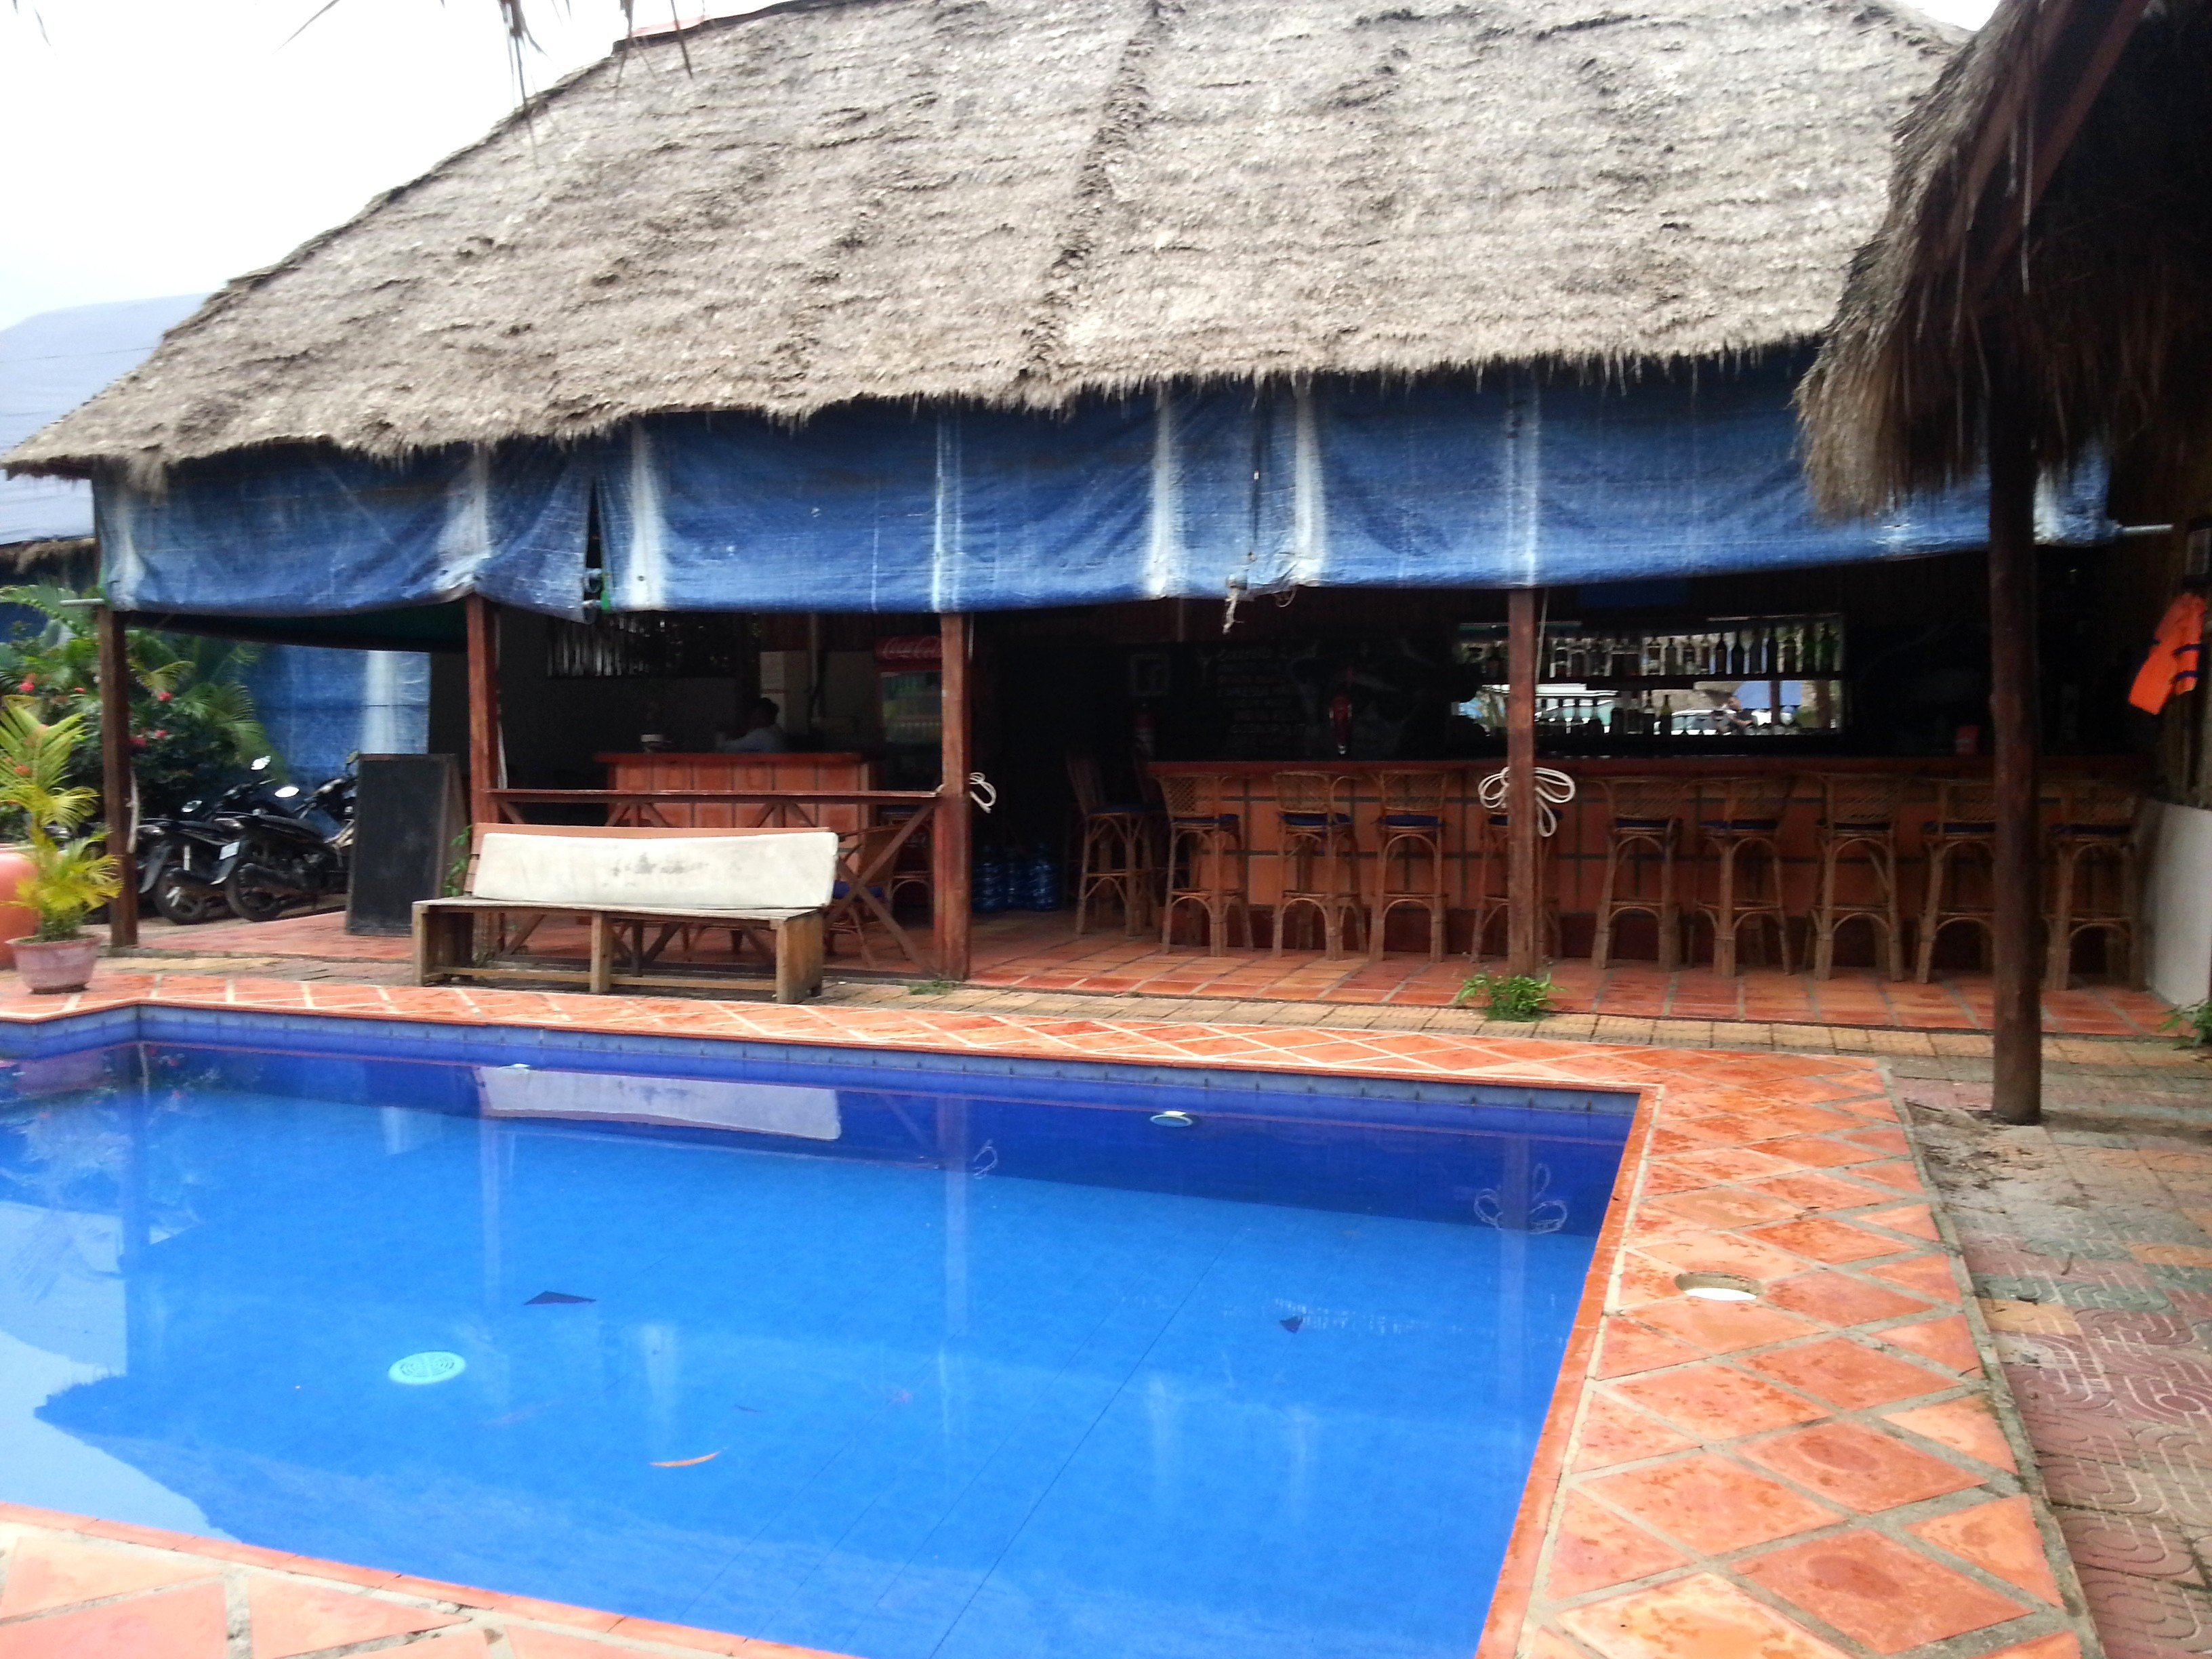 Pool and bar at the Otres Lodge